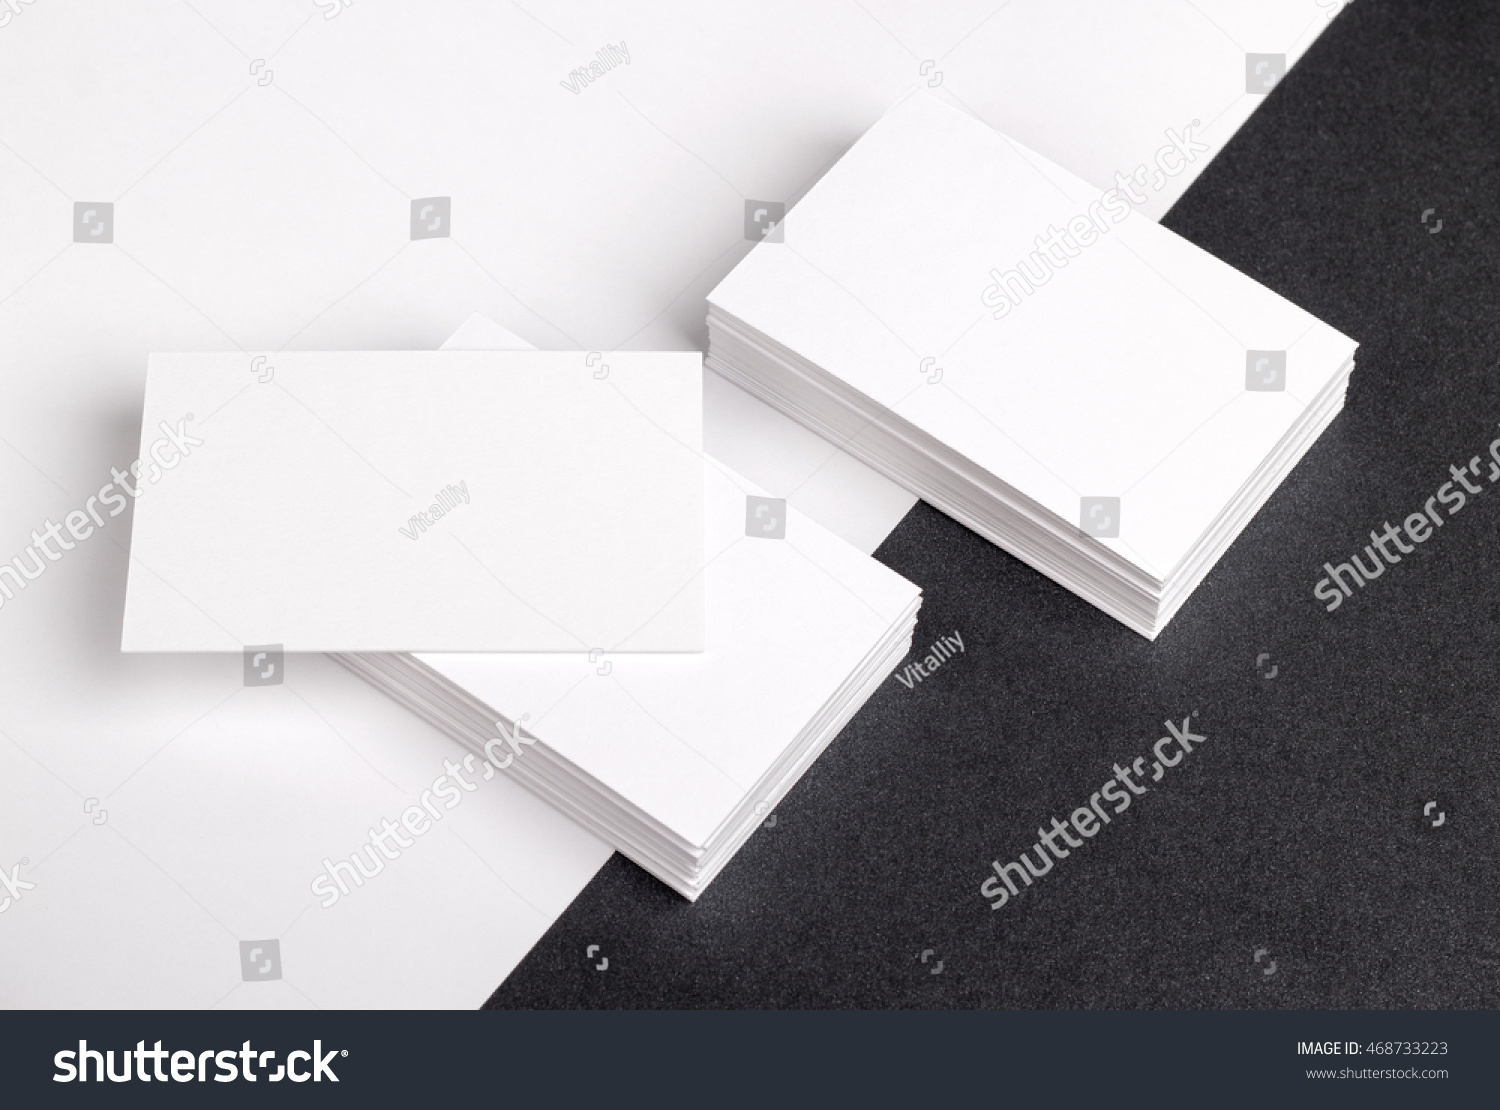 Photo of business cards. Template for branding identity. For graphic designers presentations and portfolios. Business Card, business, business, card, mock-up, mock up, mockup. #468733223